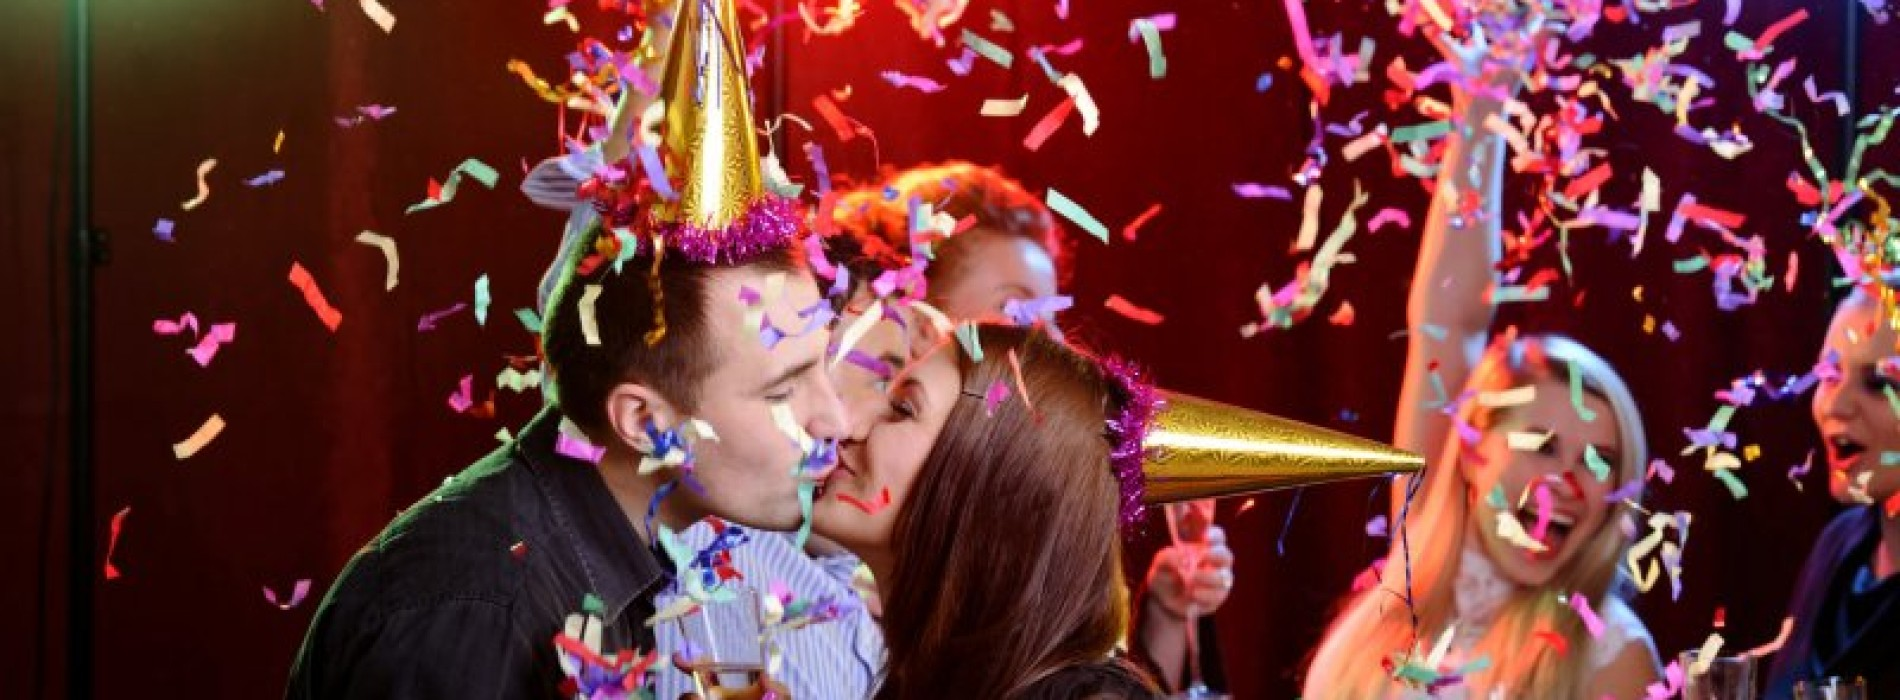 Disability, sex and relationships: making the most of New Year celebrations